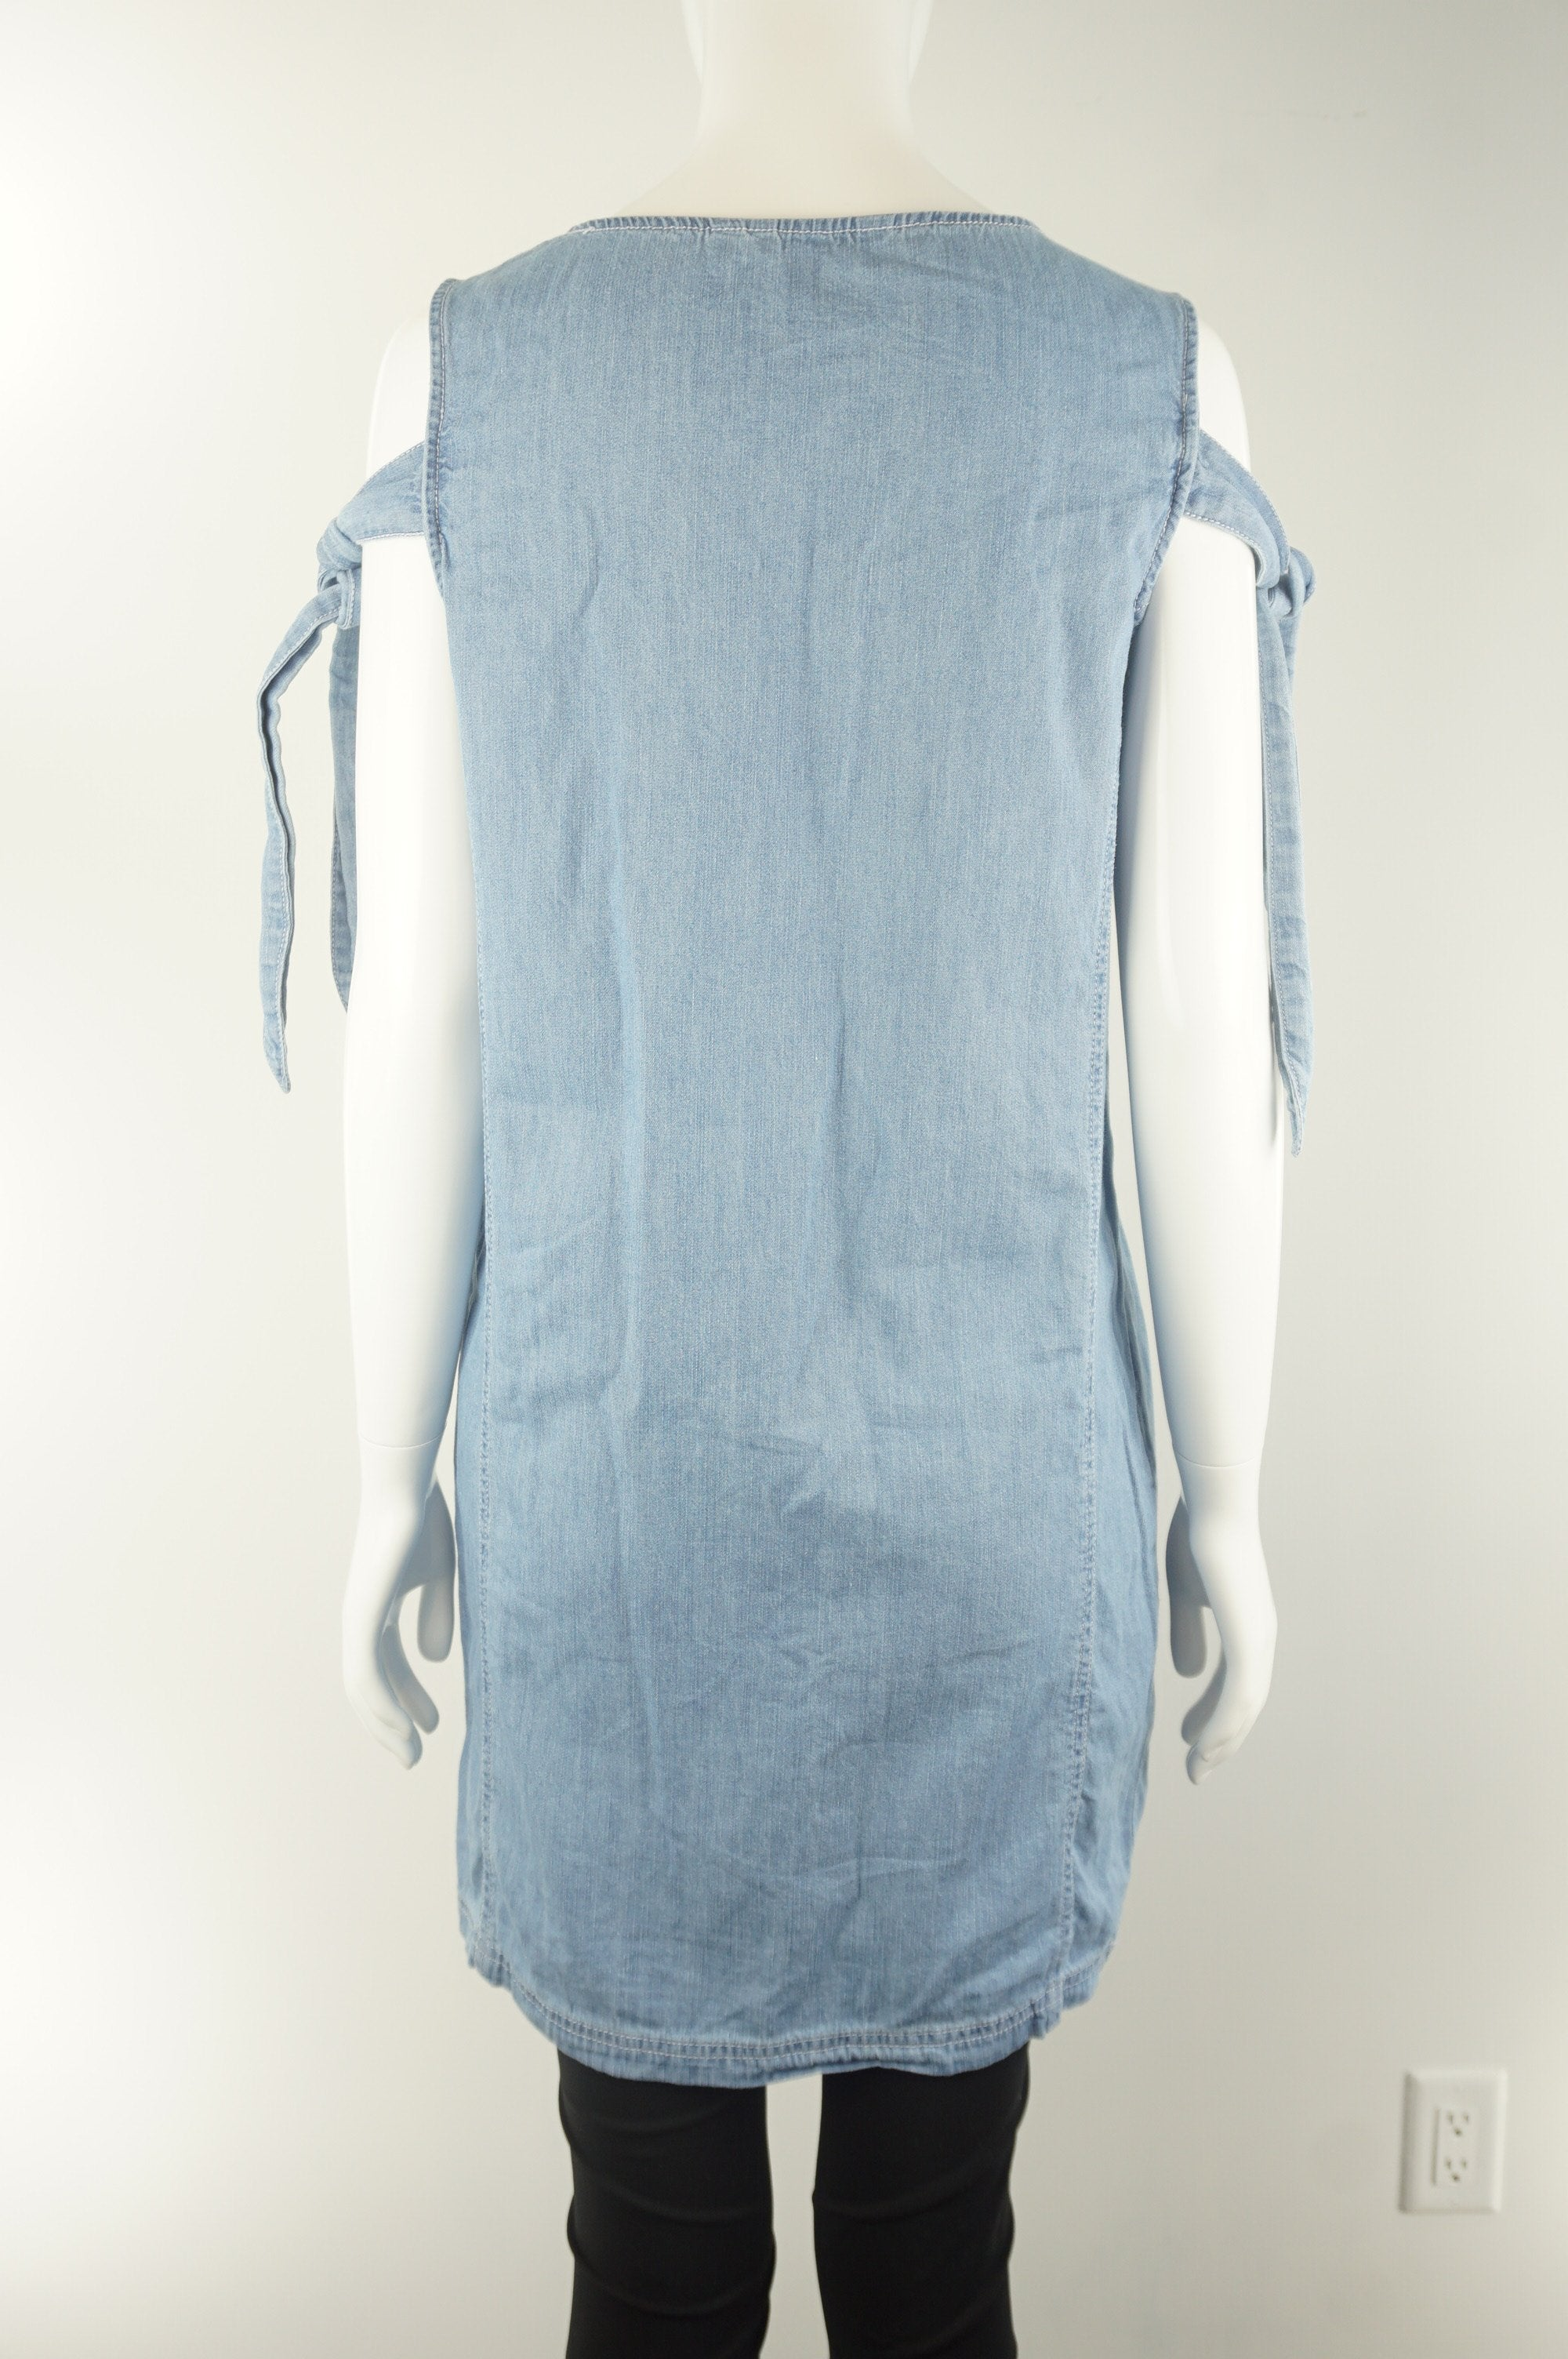 Octmami Sleeveless Denim Blue Maternity Dress, Pure cotton dress for the maximum comfort during pregnancy. Simple and elegant design., Blue, 100% Cotton, women's Mom & Baby, women's Blue Mom & Baby, Octmami women's Mom & Baby, stylish maternity dress, maternity dress, blue pregnancy dress, cute pregnancy clothes, summer maternity clothes